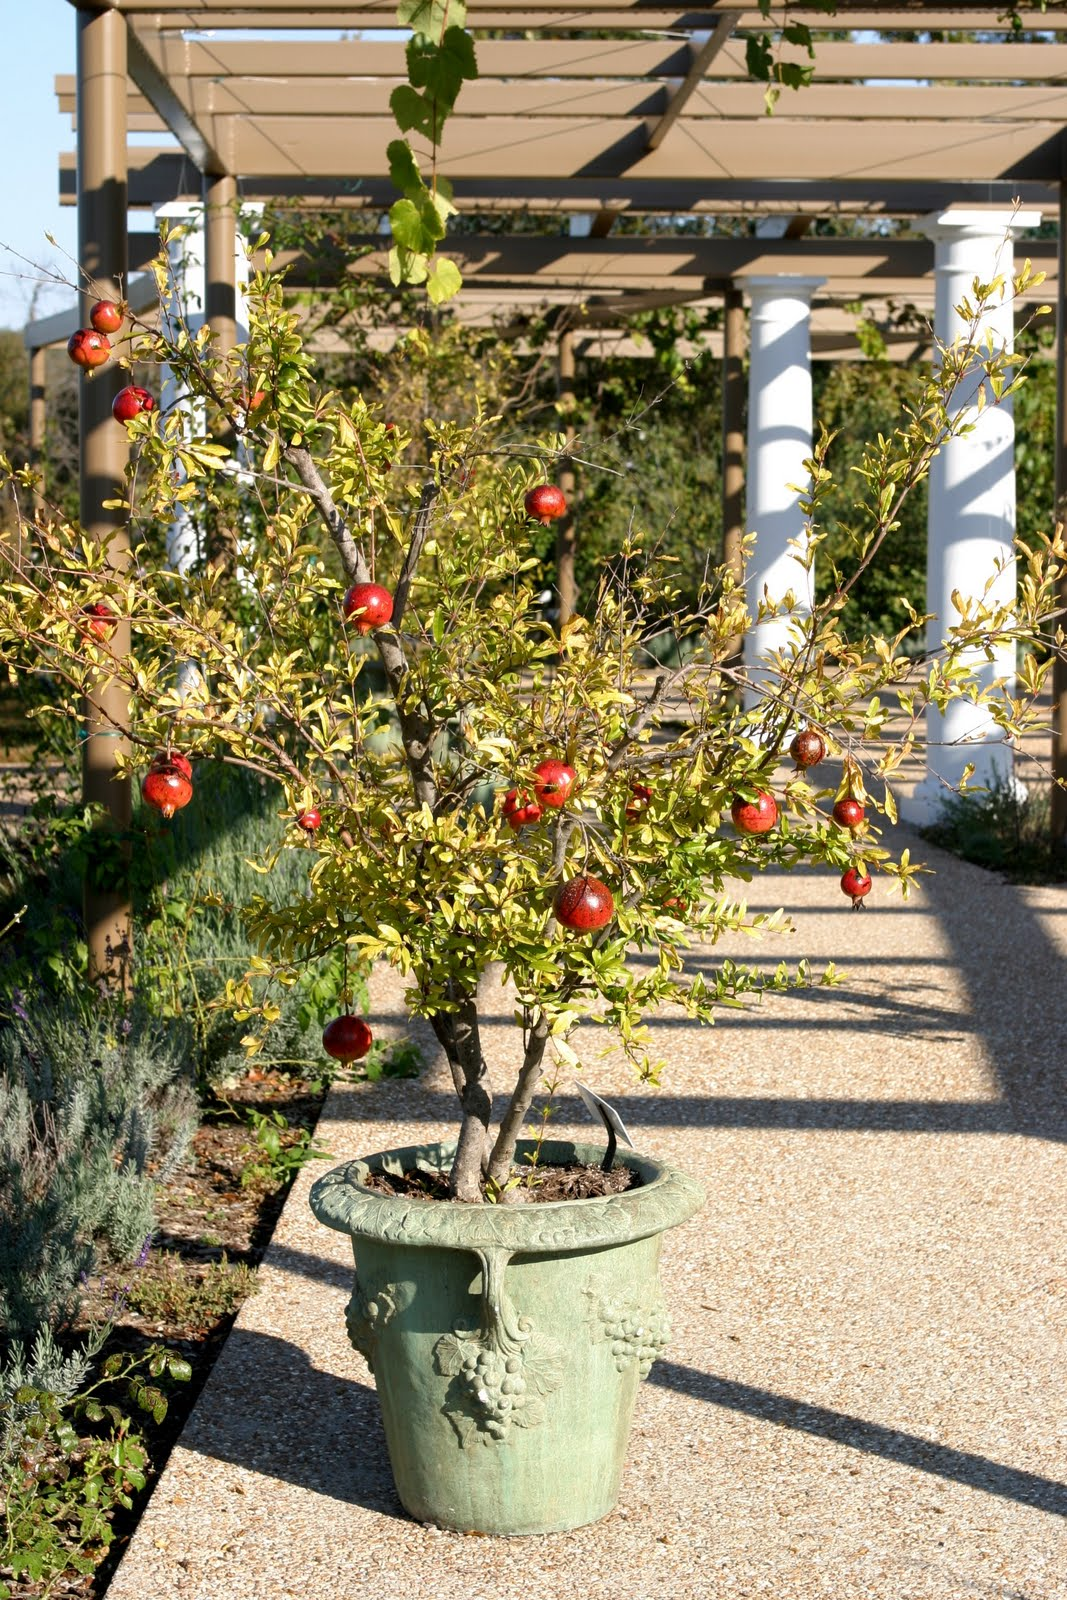 Easy Tips How to Grow Pomegranate From Seed, Grow Your Own Pomegranate - Everything About Garden